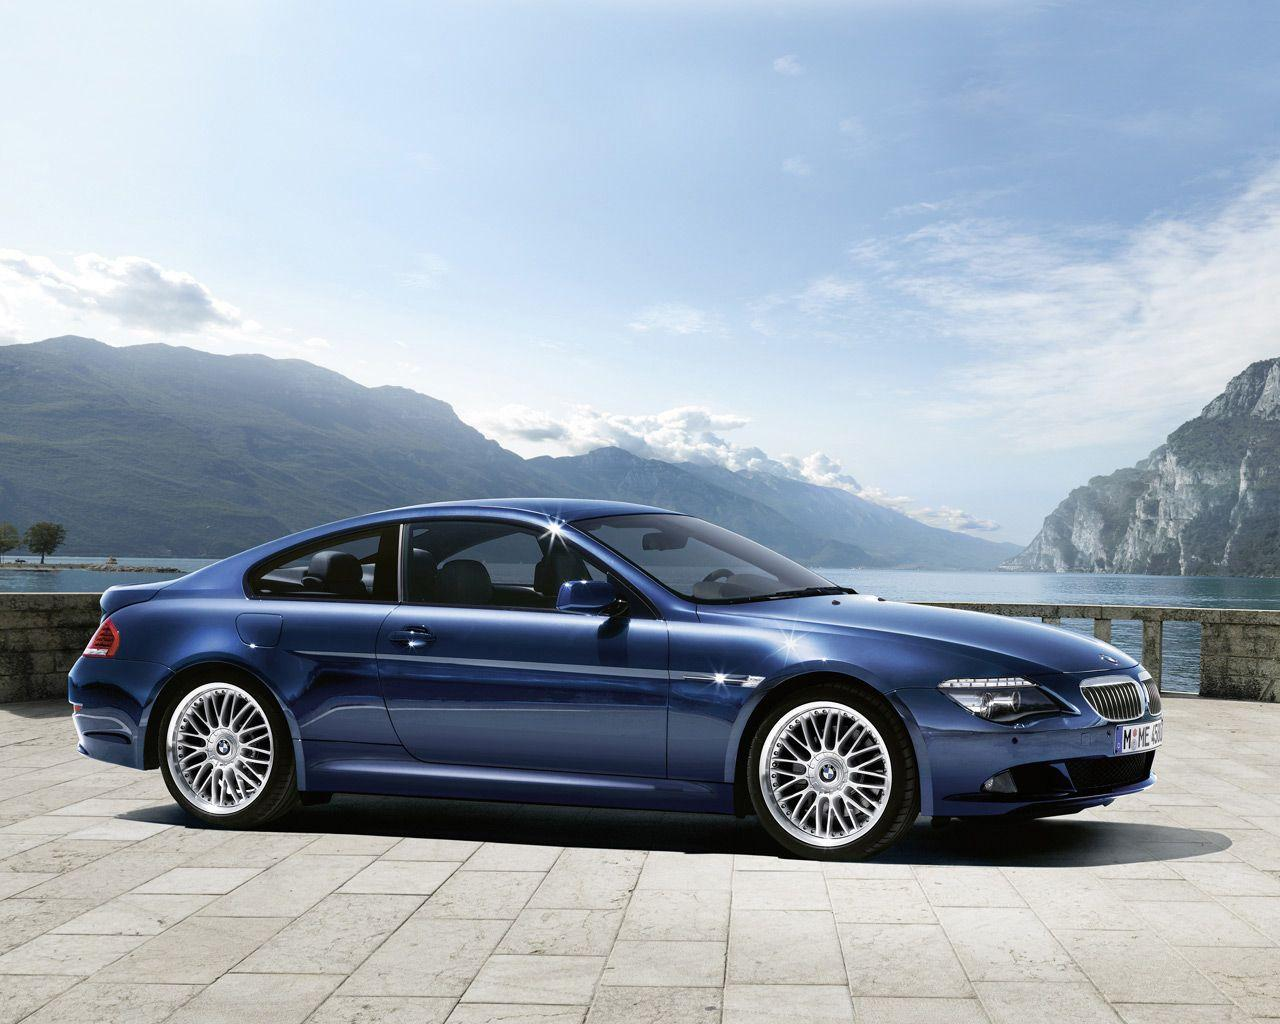 BMW 6 Series Coupe Wallpapers